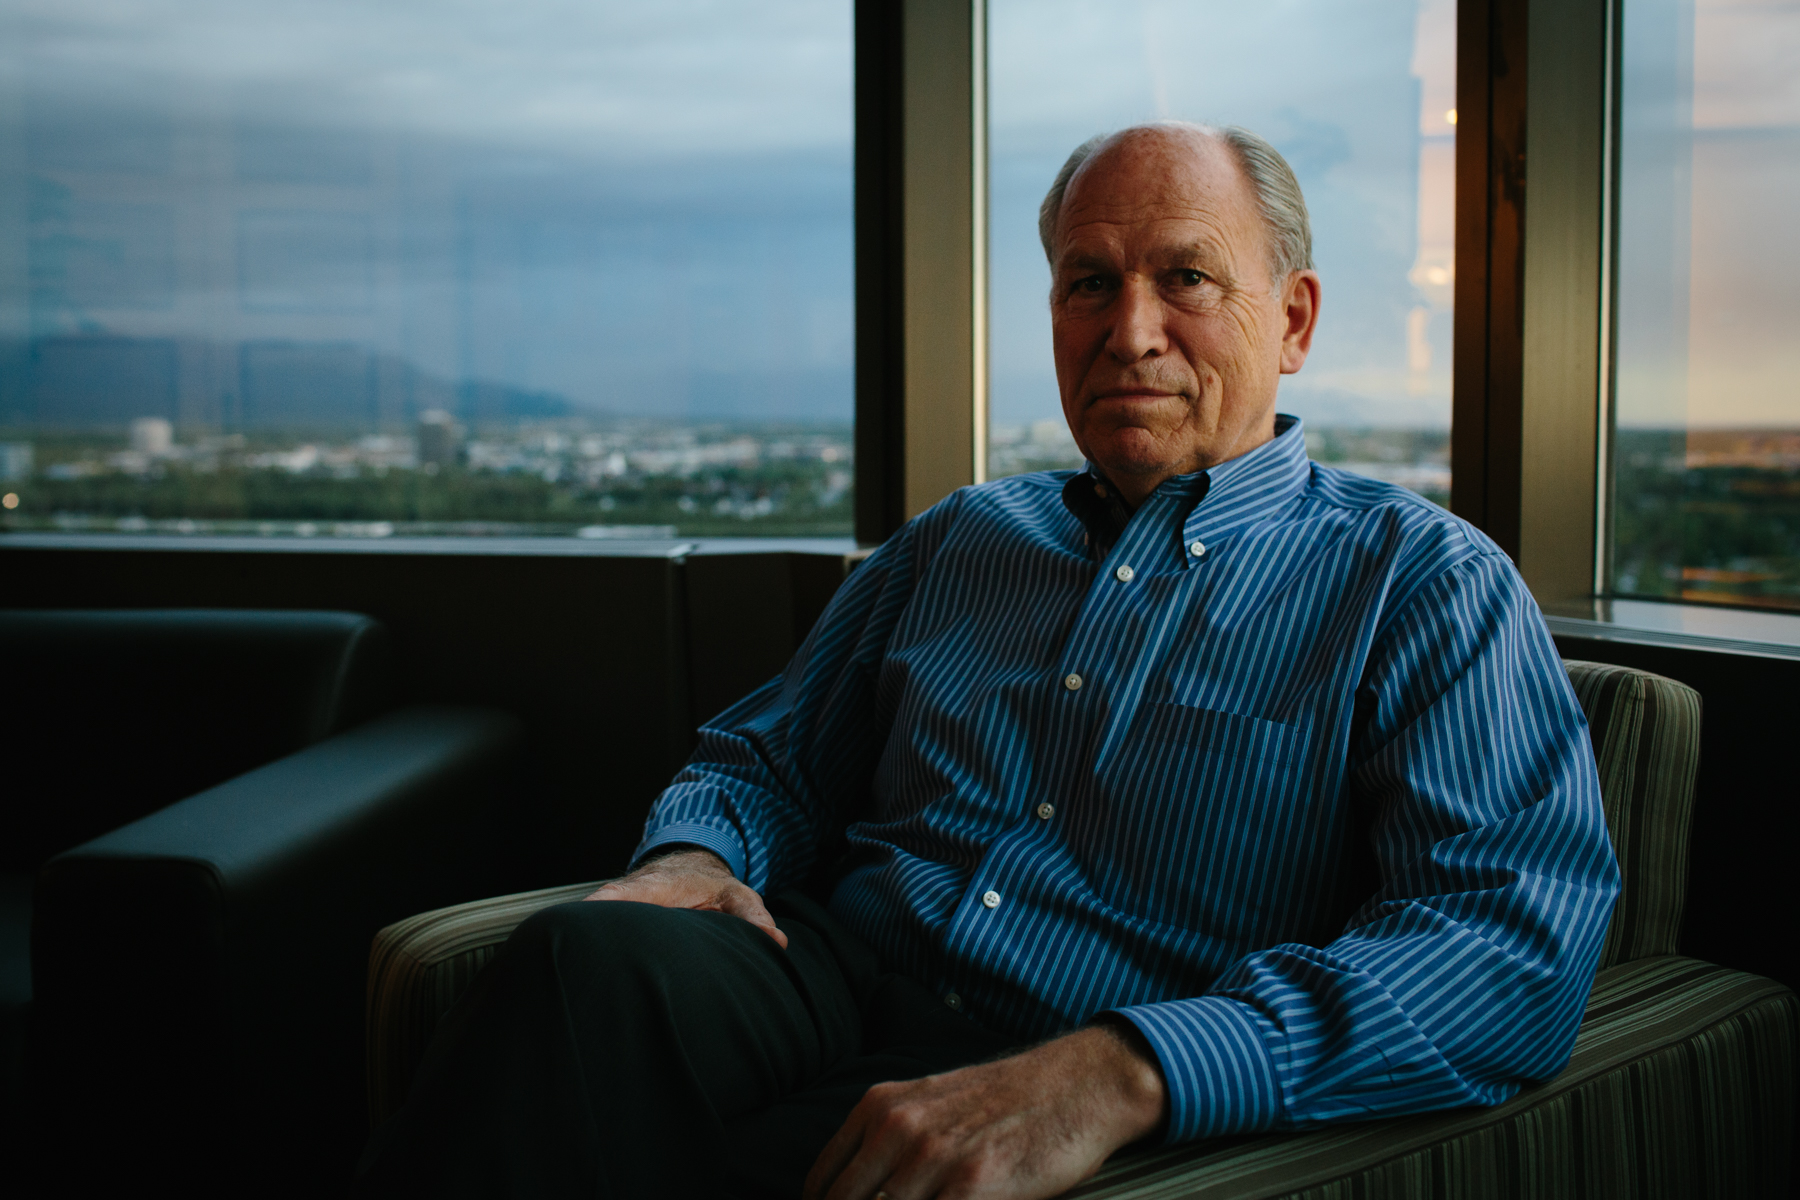 Alaska Governor Bill Walker for the New York Times